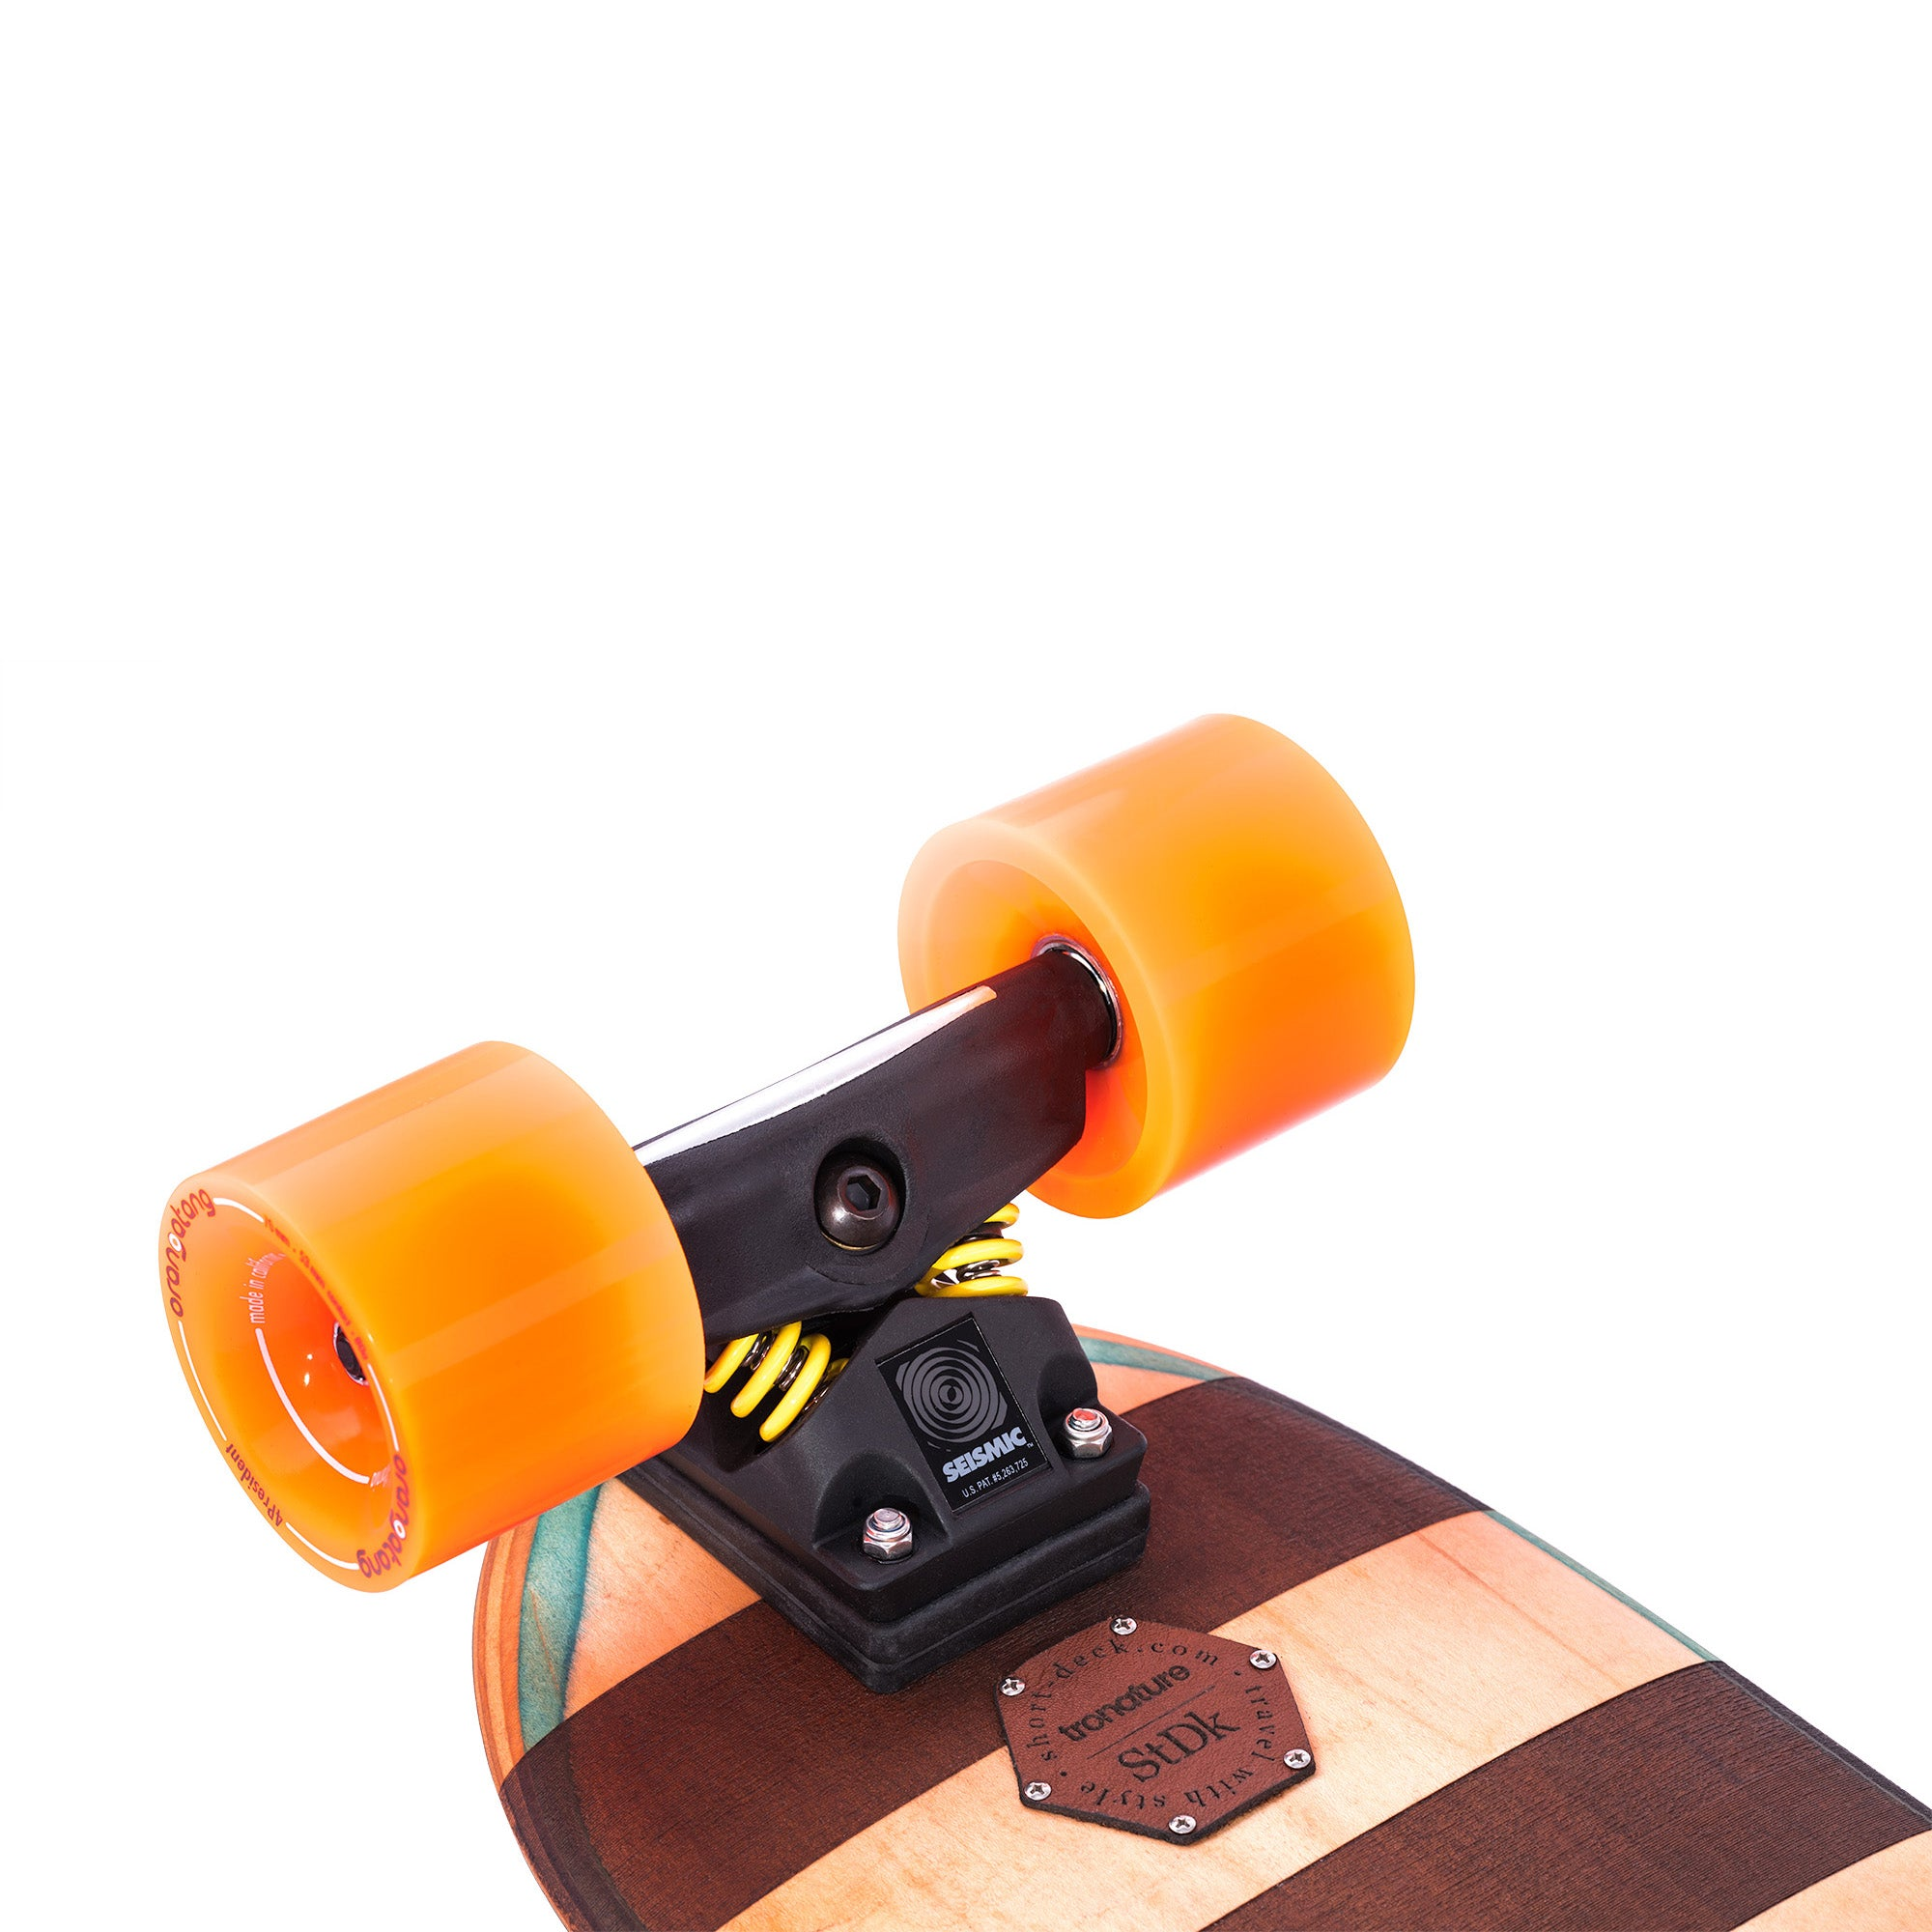 ShortDeck the KickFish.